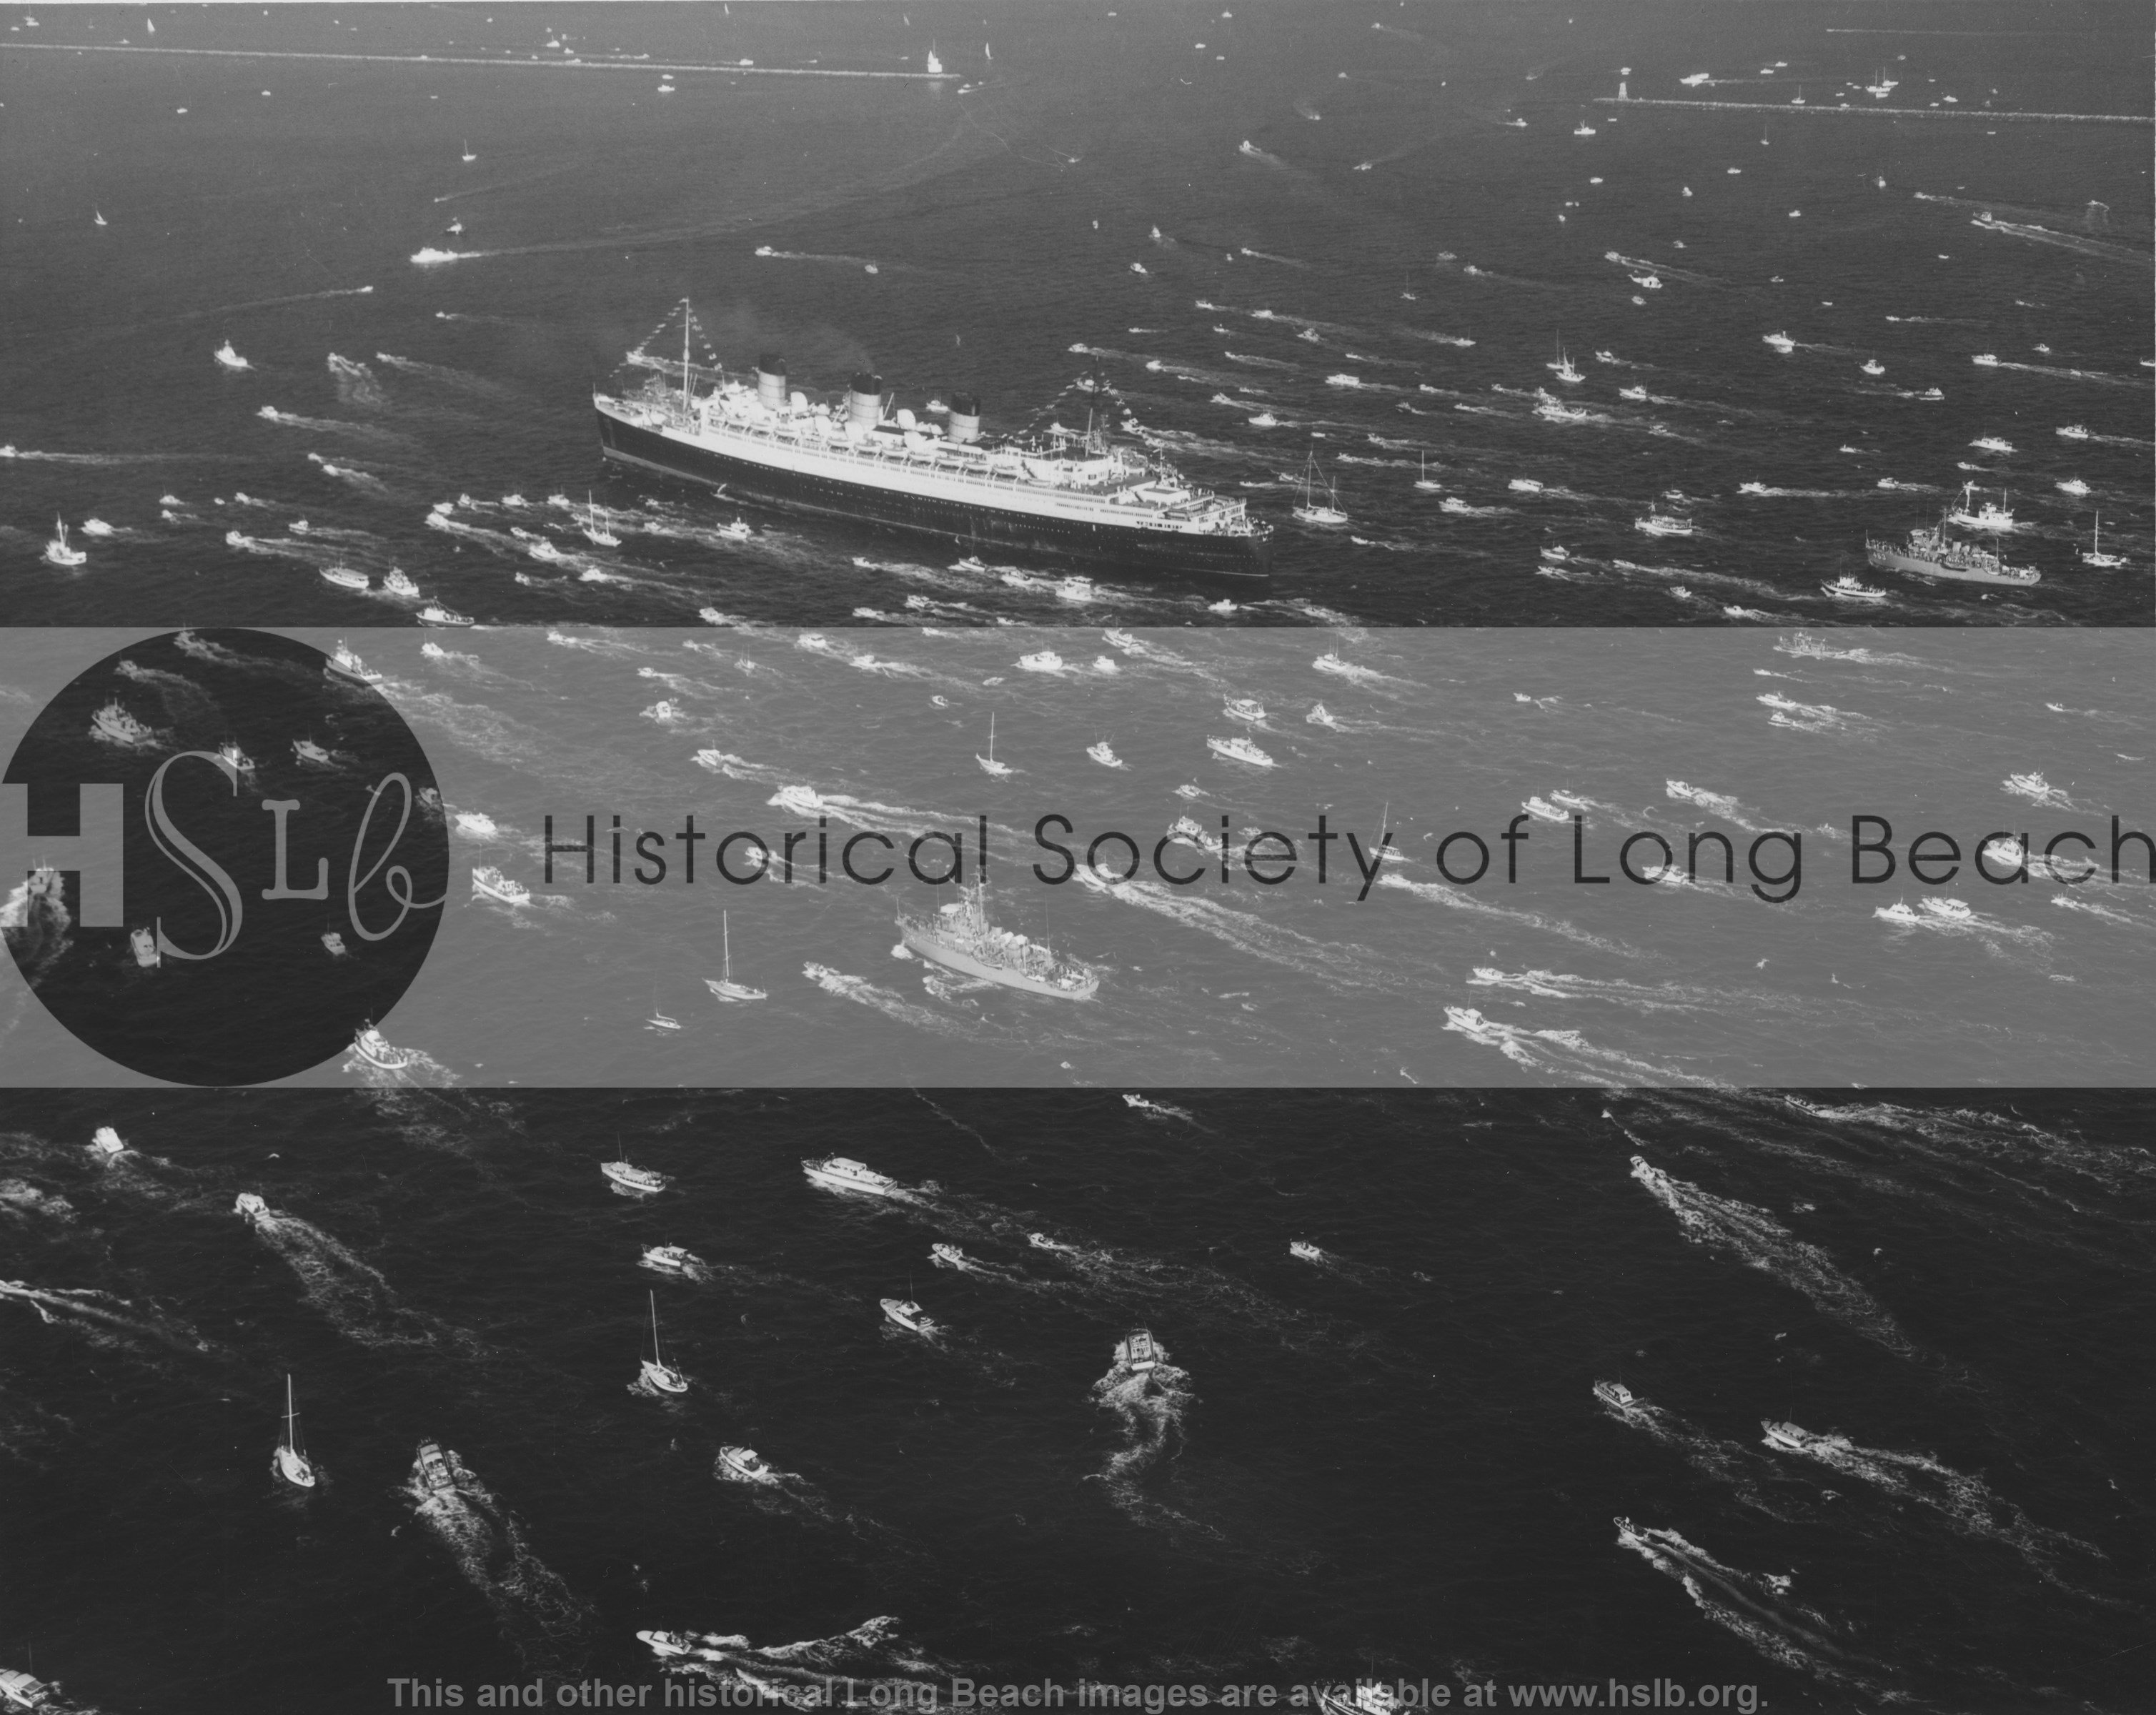 Queen Mary arriving, 1967 historical photograph